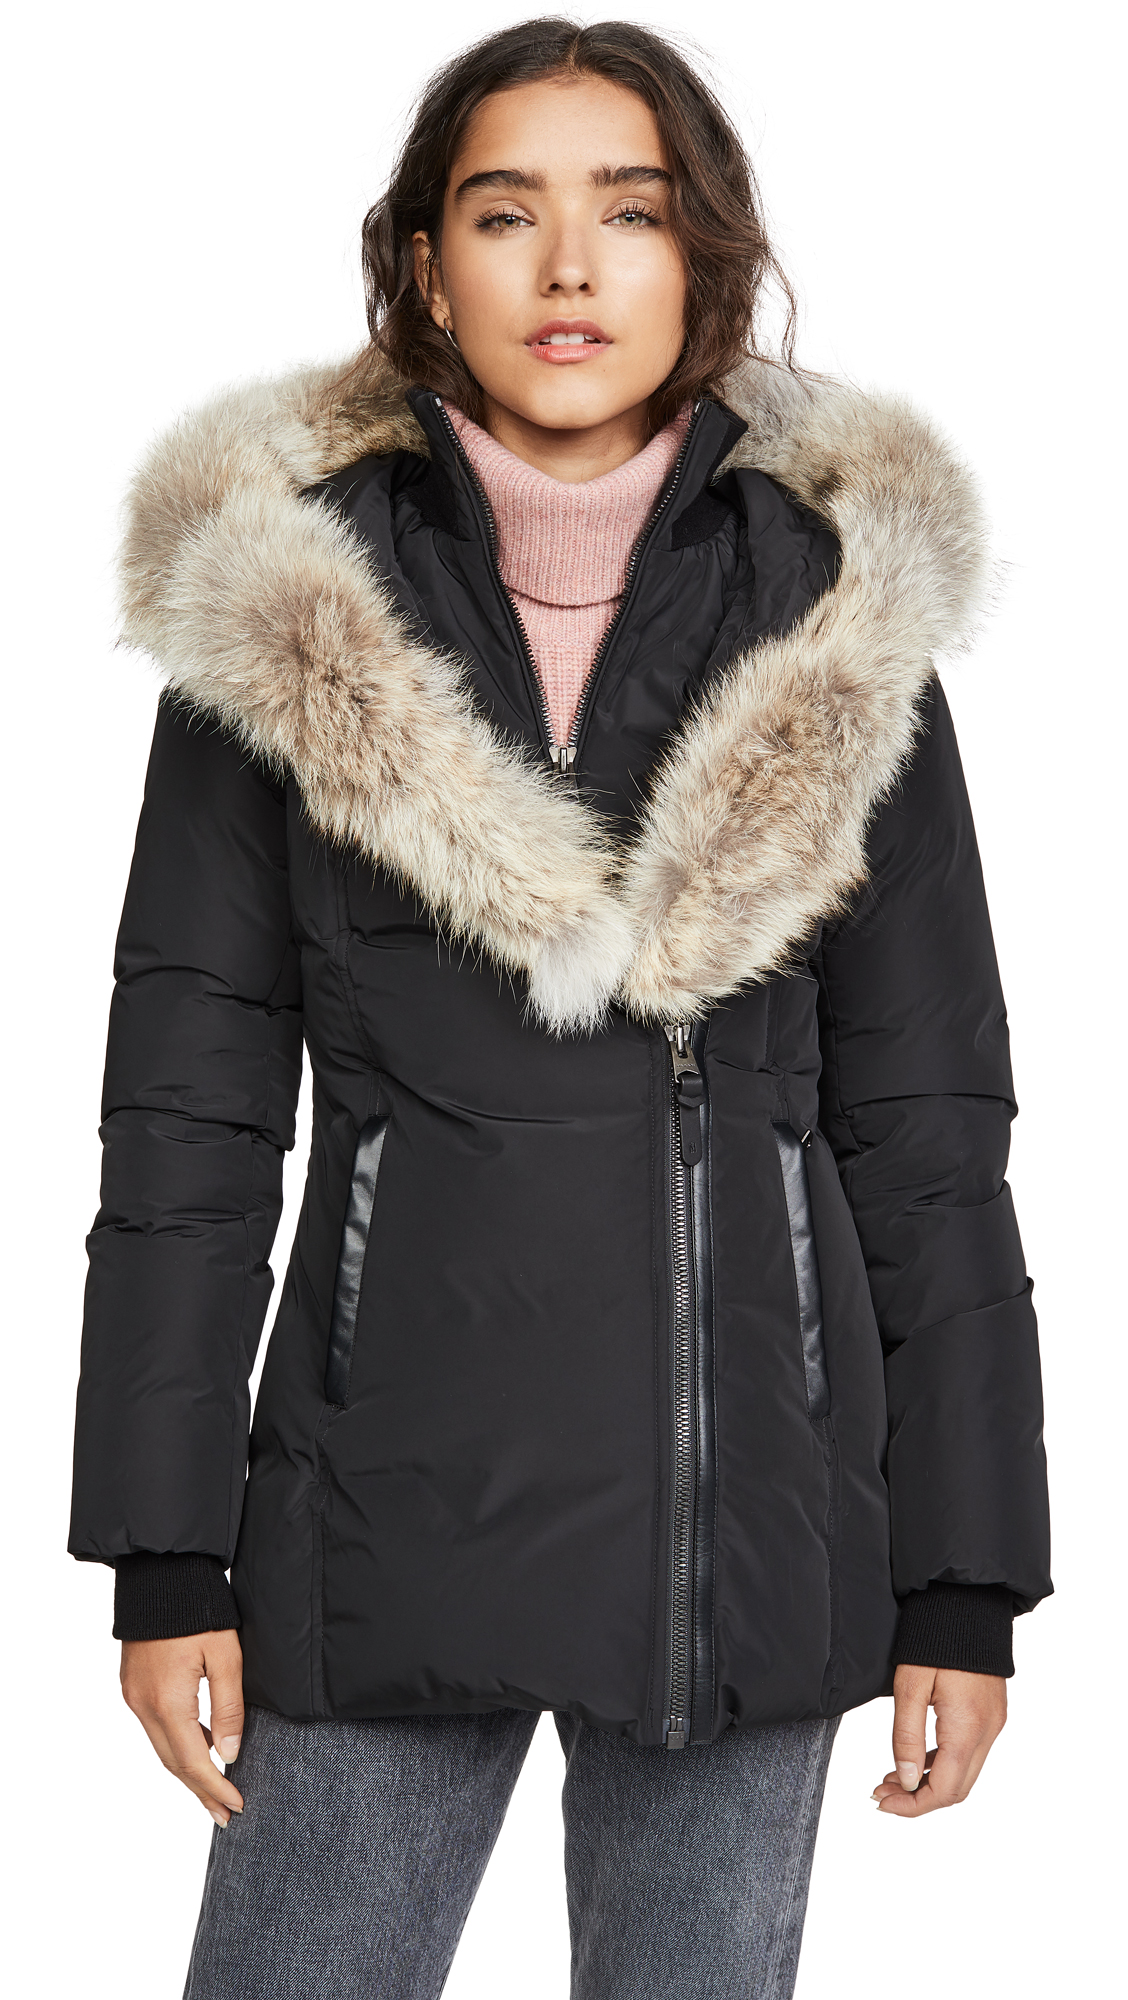 Buy Mackage Adali Coat online beautiful Mackage Jackets, Coats, Down Jackets